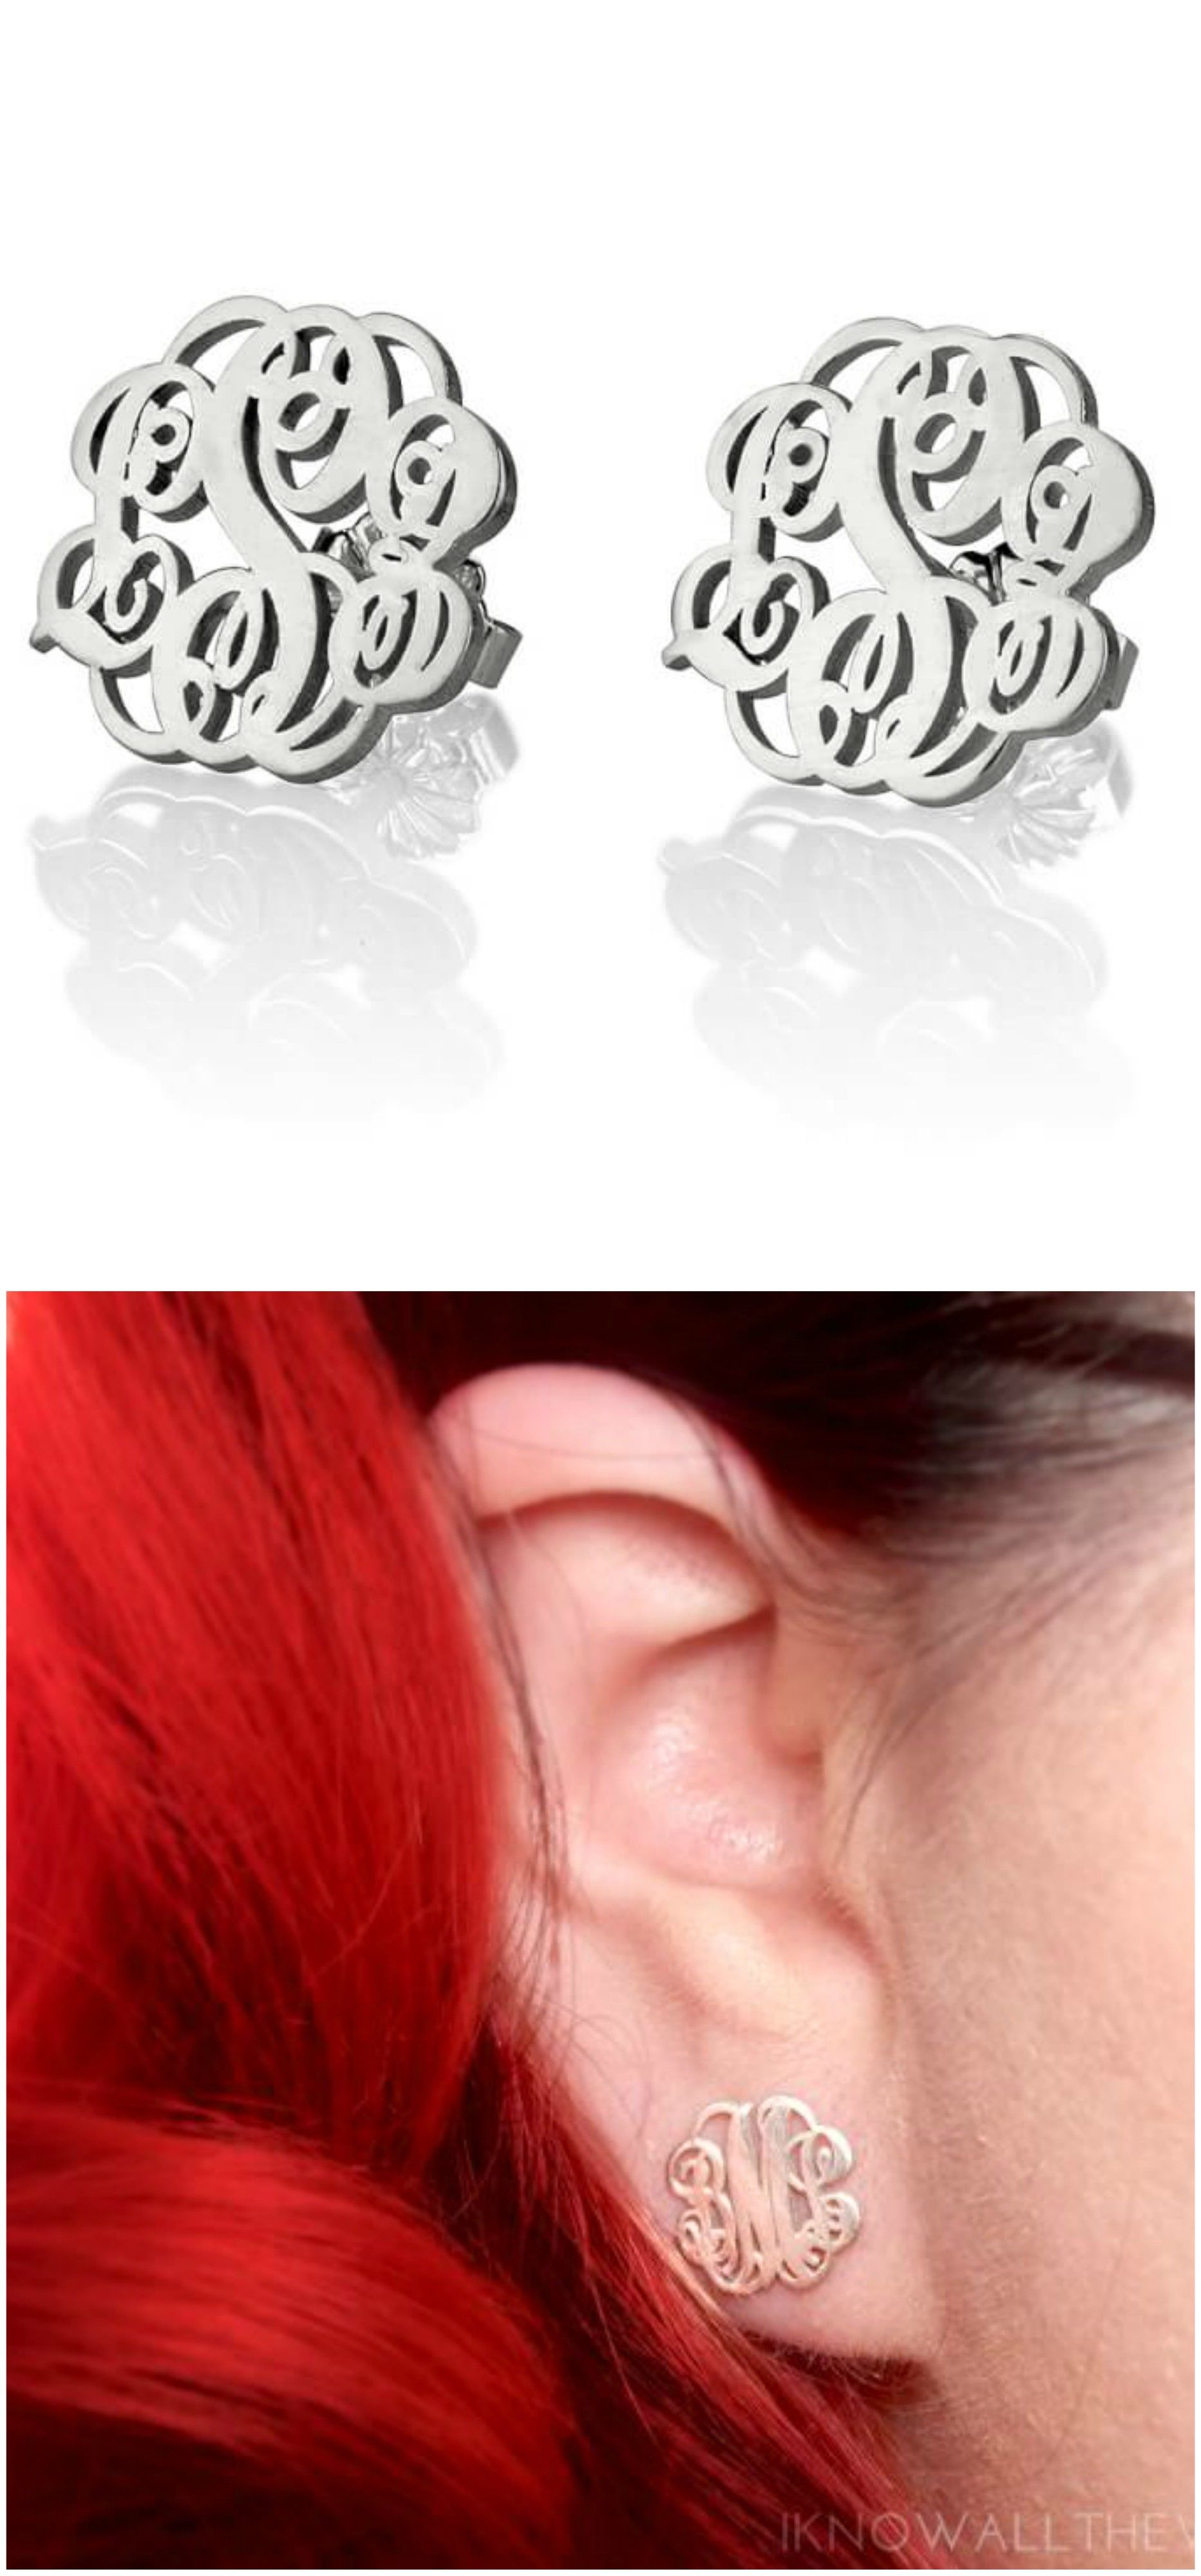 Make A Statement Today With Pair Of Monogram Earrings Your Very Own Available Now At Onecklace